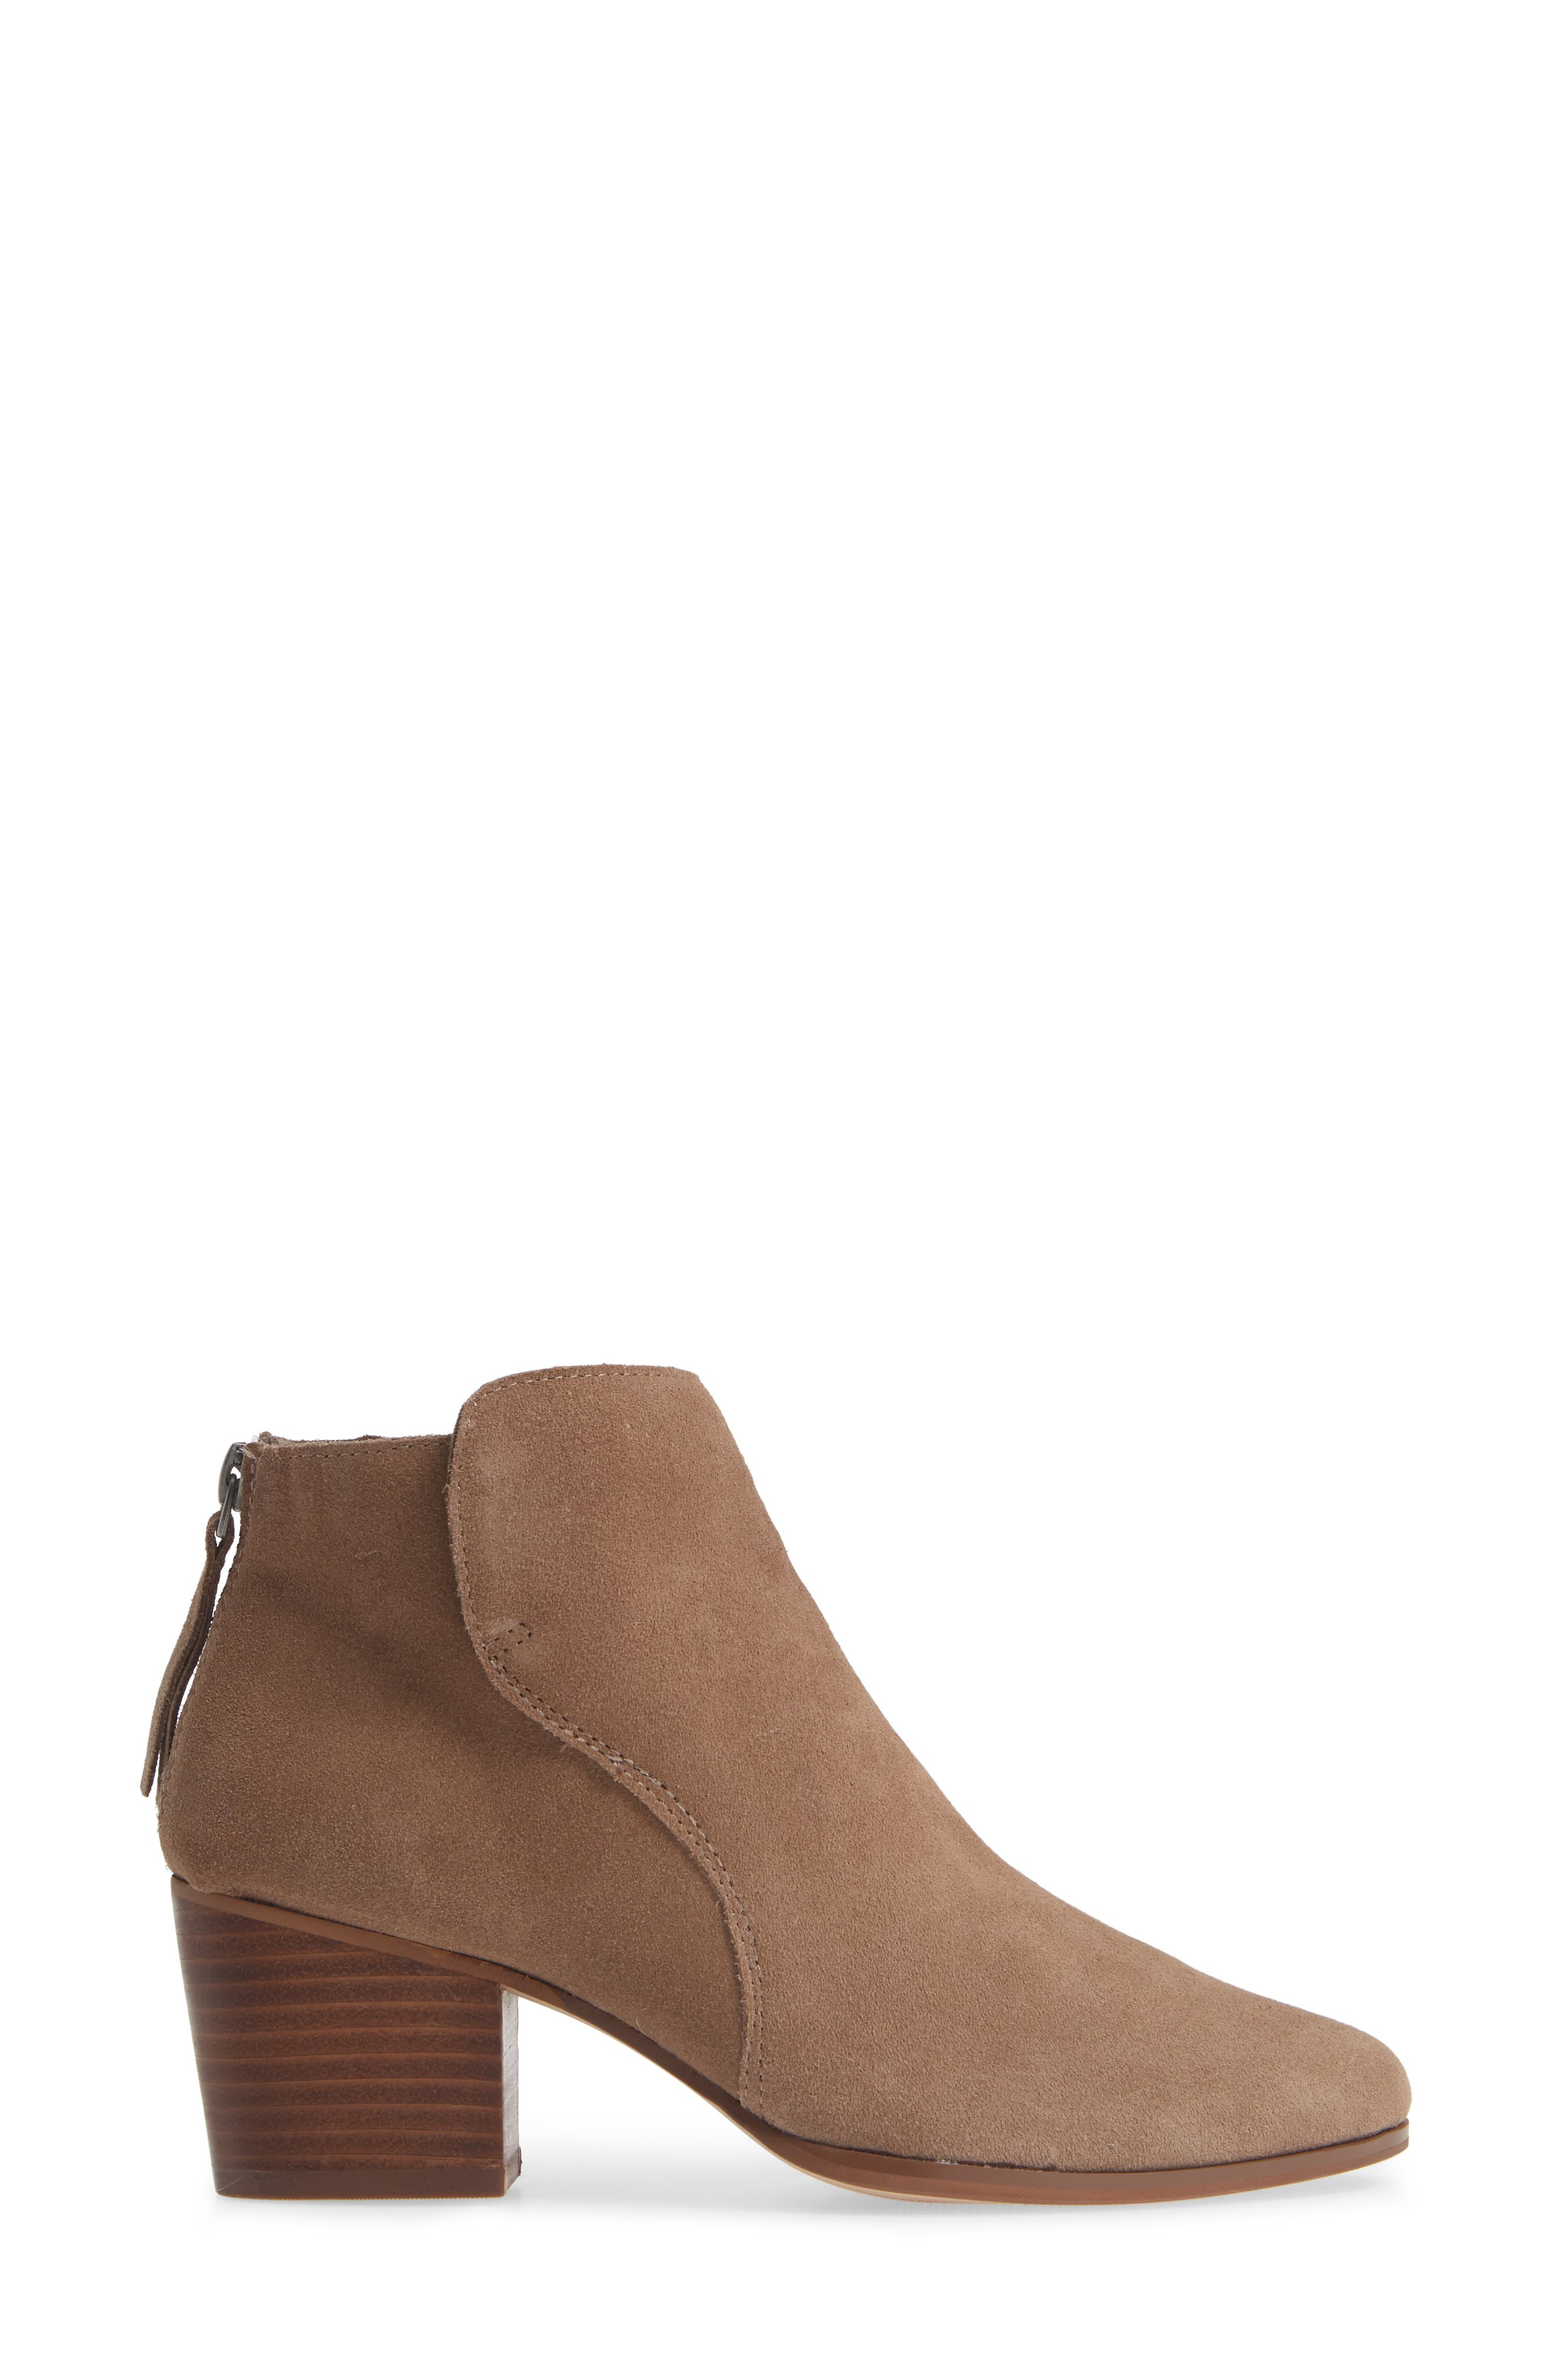 River Bootie,                             Alternate thumbnail 3, color,                             NEW TAUPE SUEDE